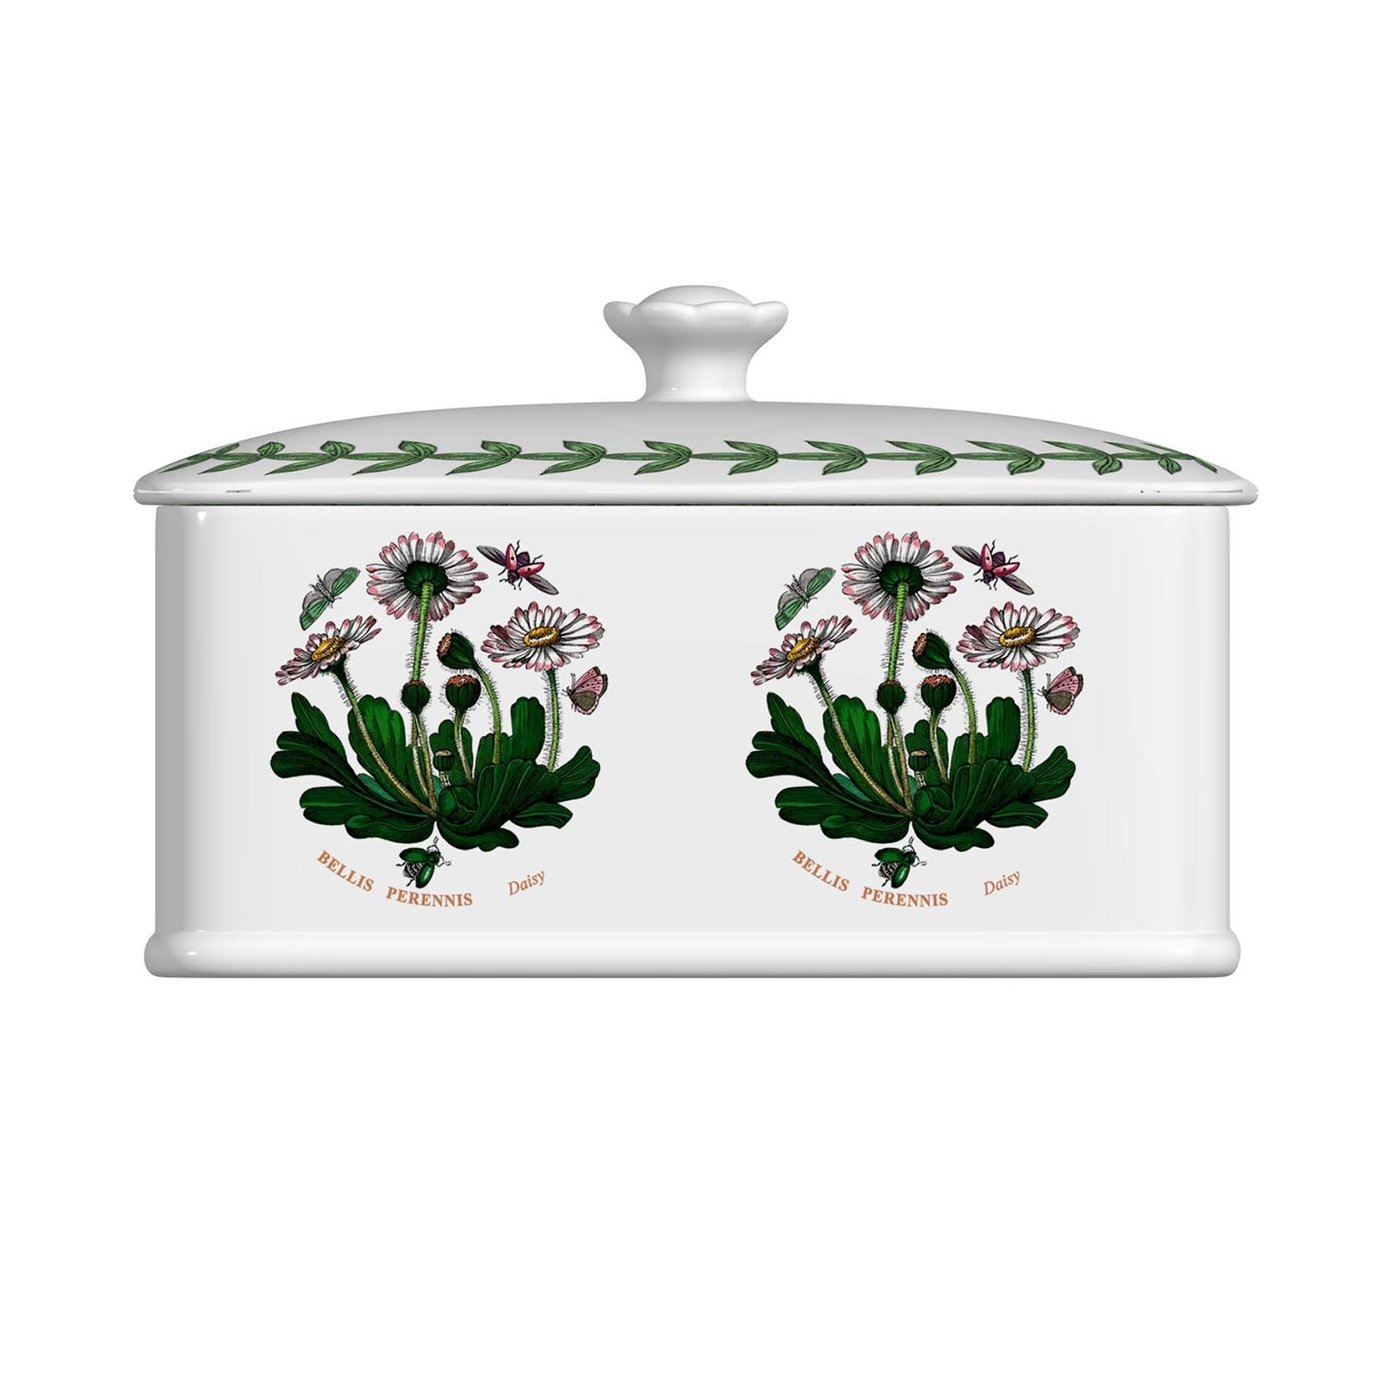 Portmeirion Botanic Garden Covered Treasure Box 6 x 3.5 Inch image number 0